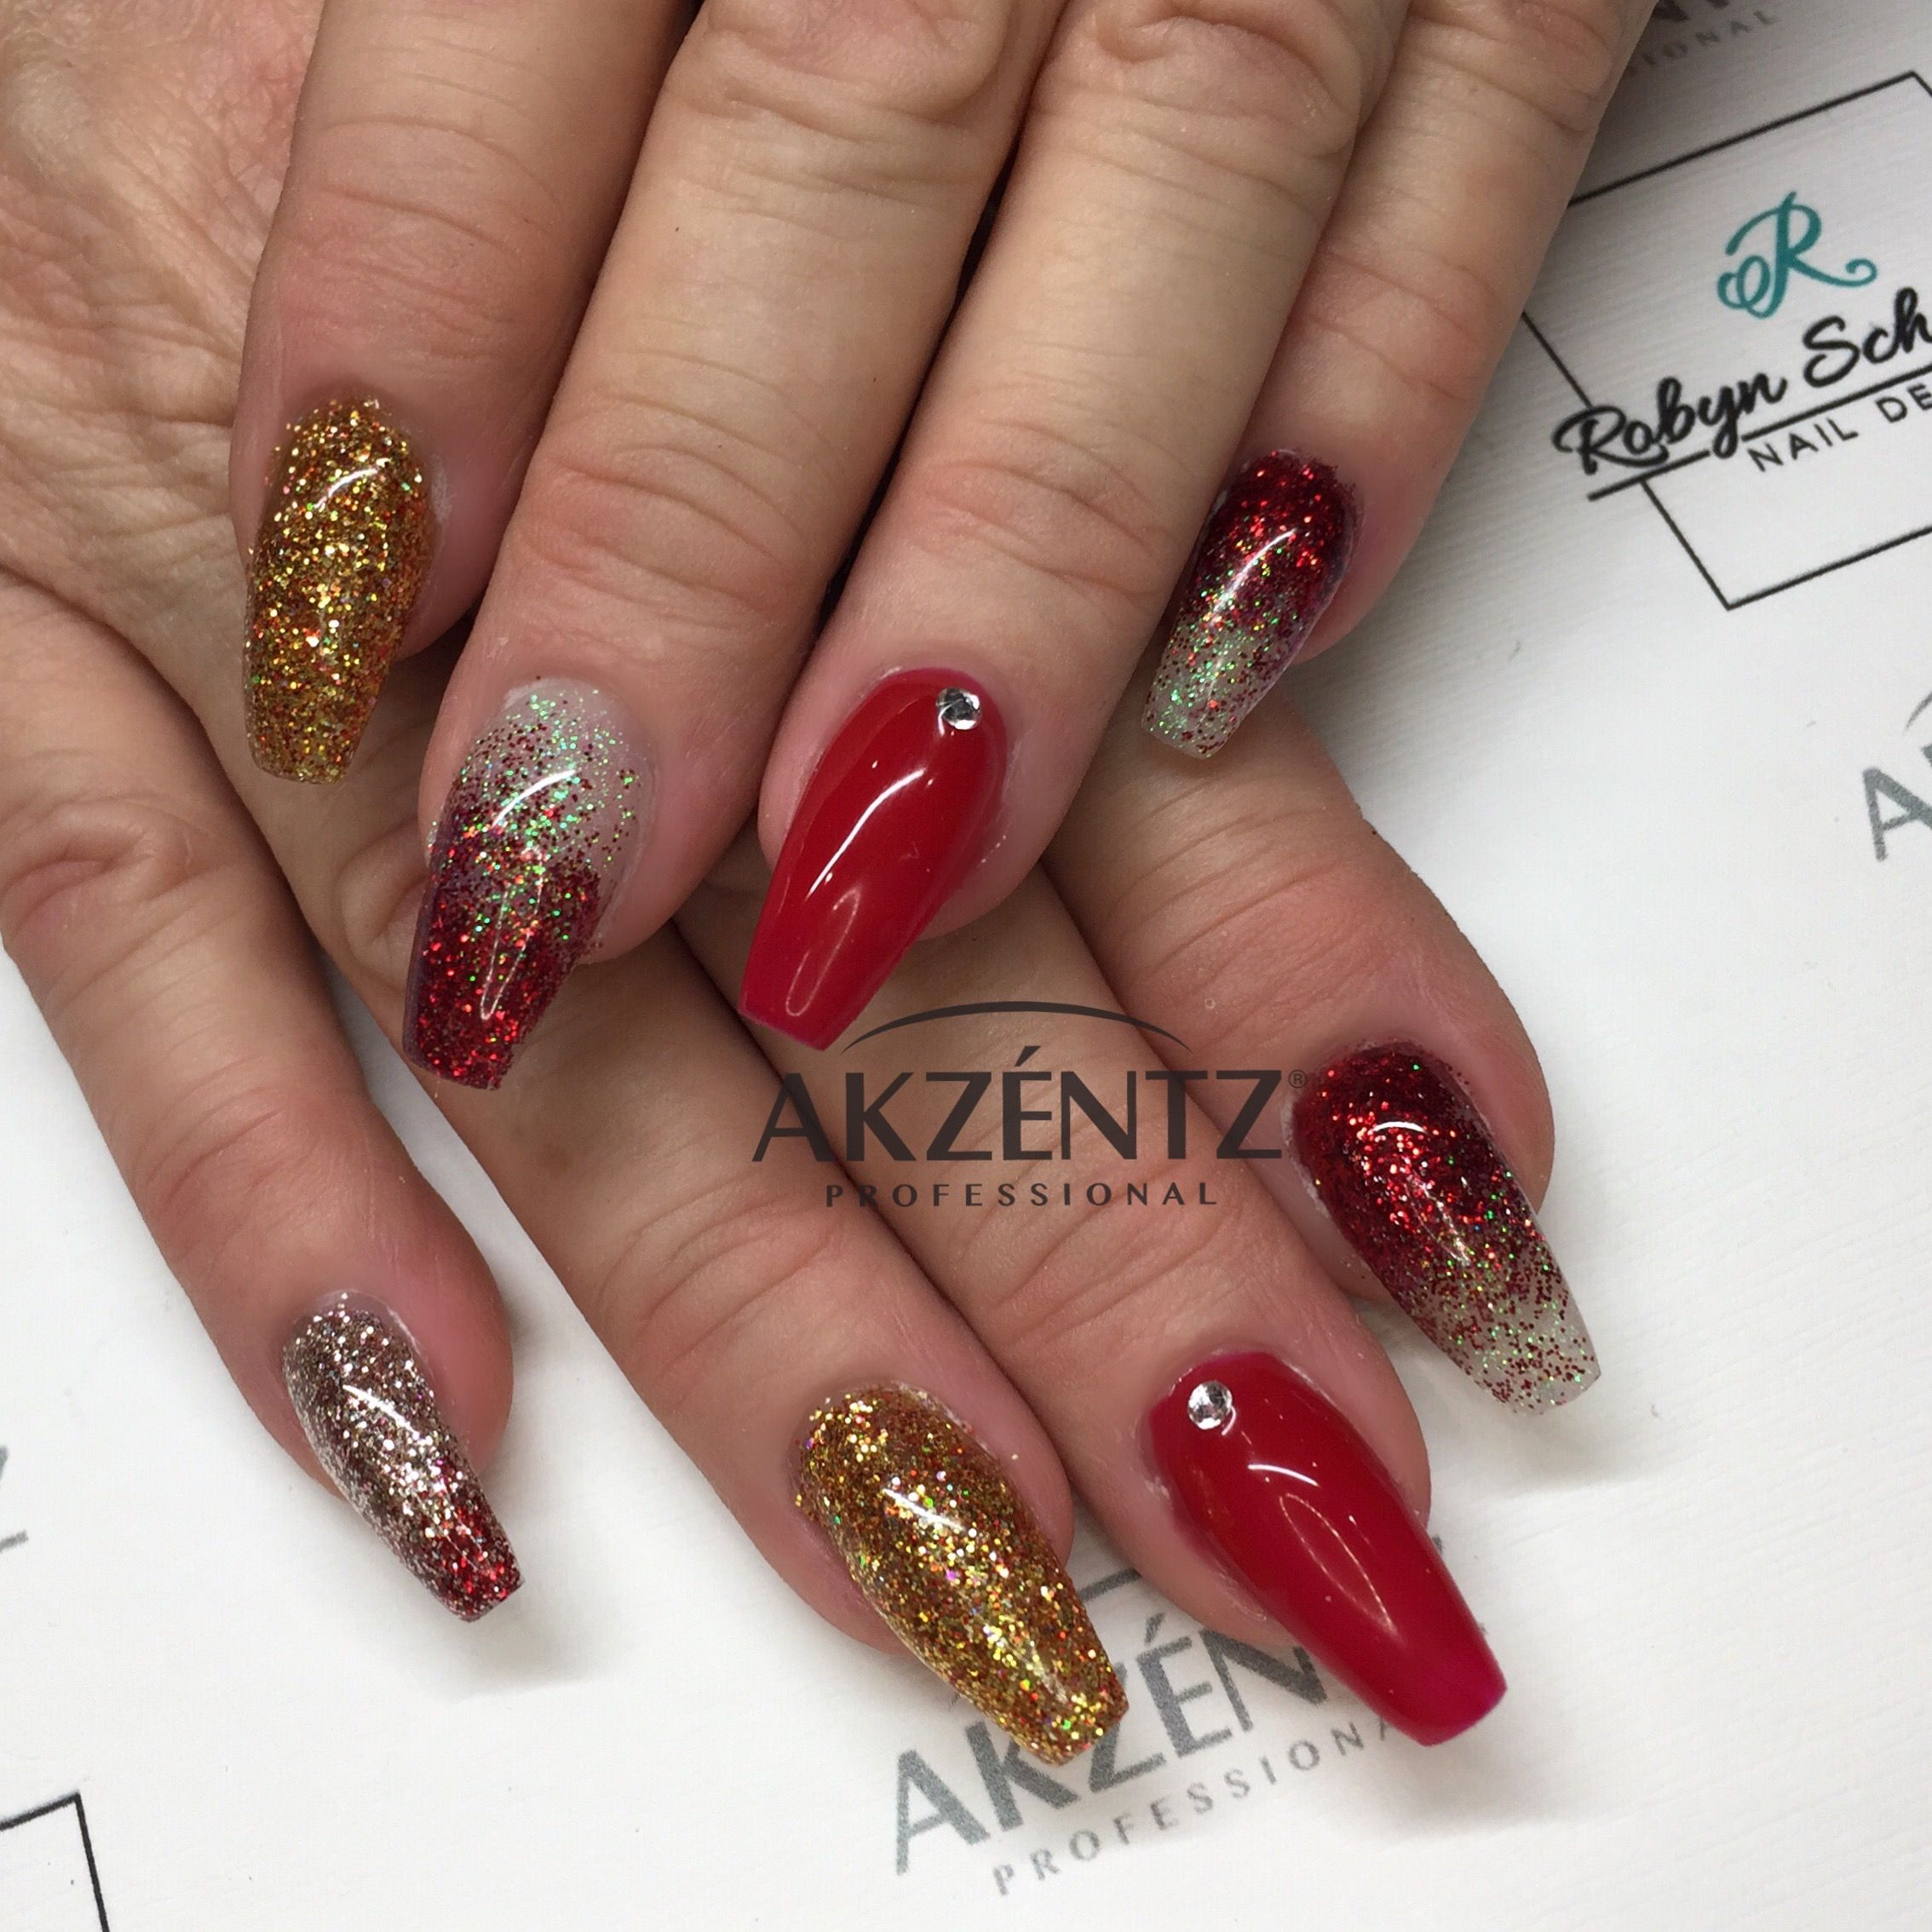 Luxio Passion and loose glitters are the perfect red festive nails ...